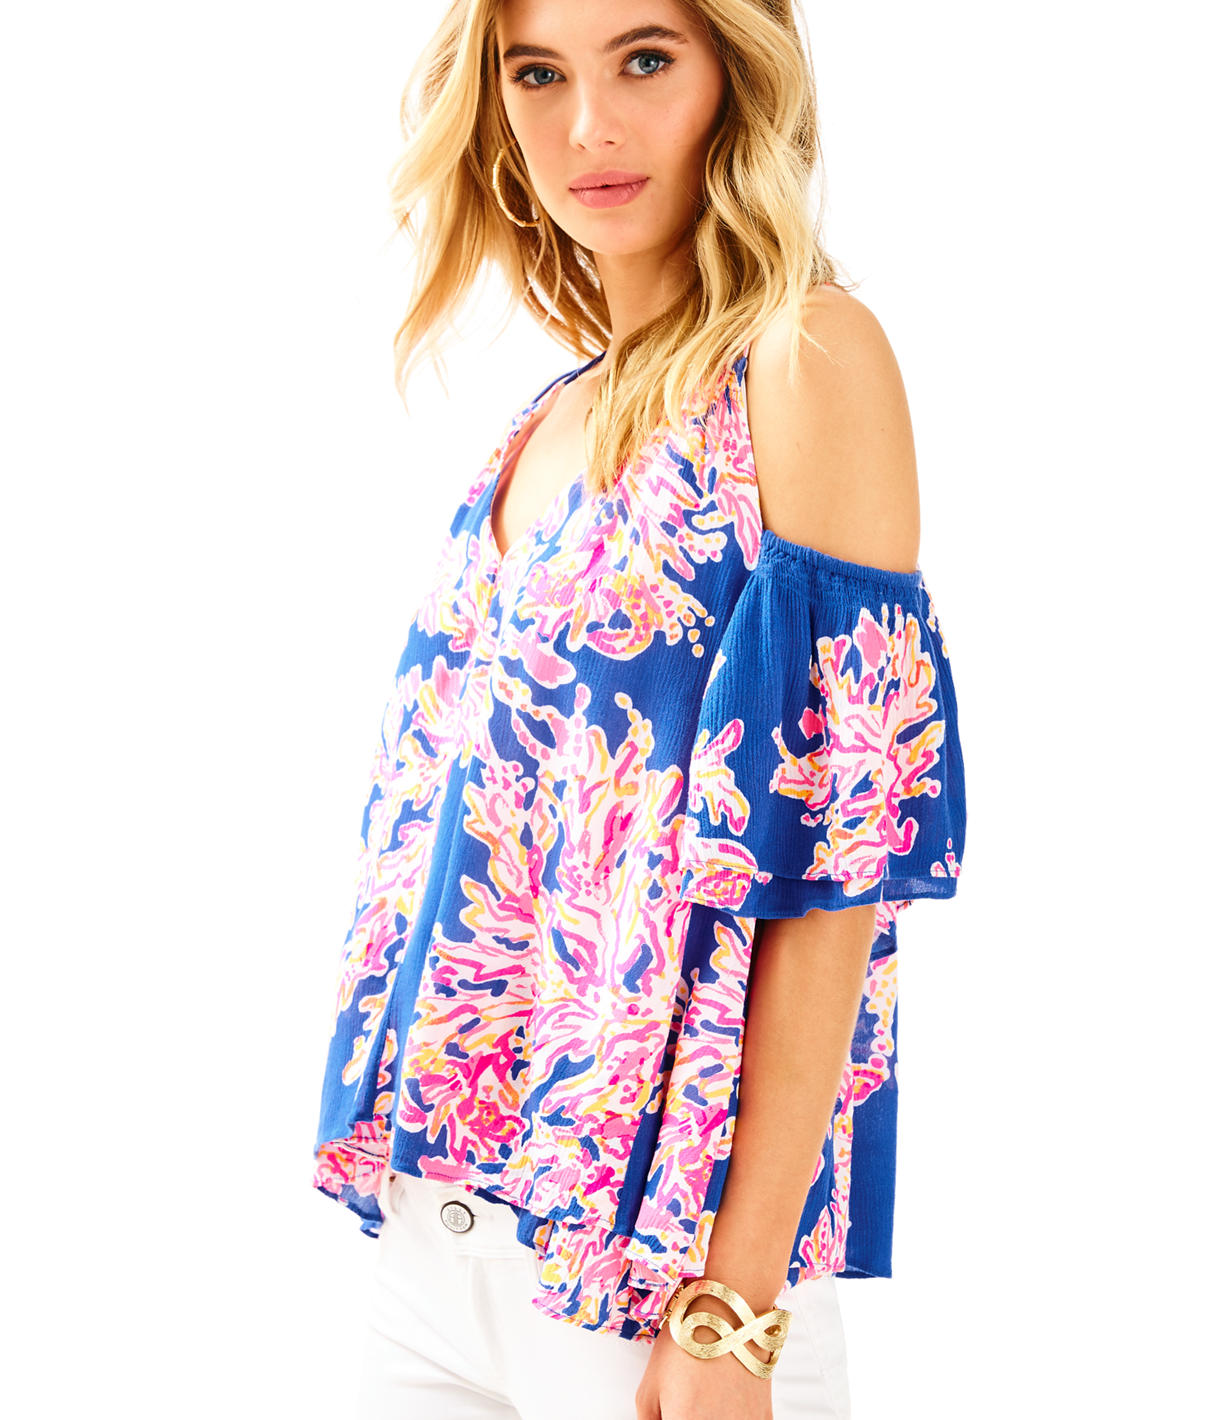 Lilly Pulitzer Bellamie Top